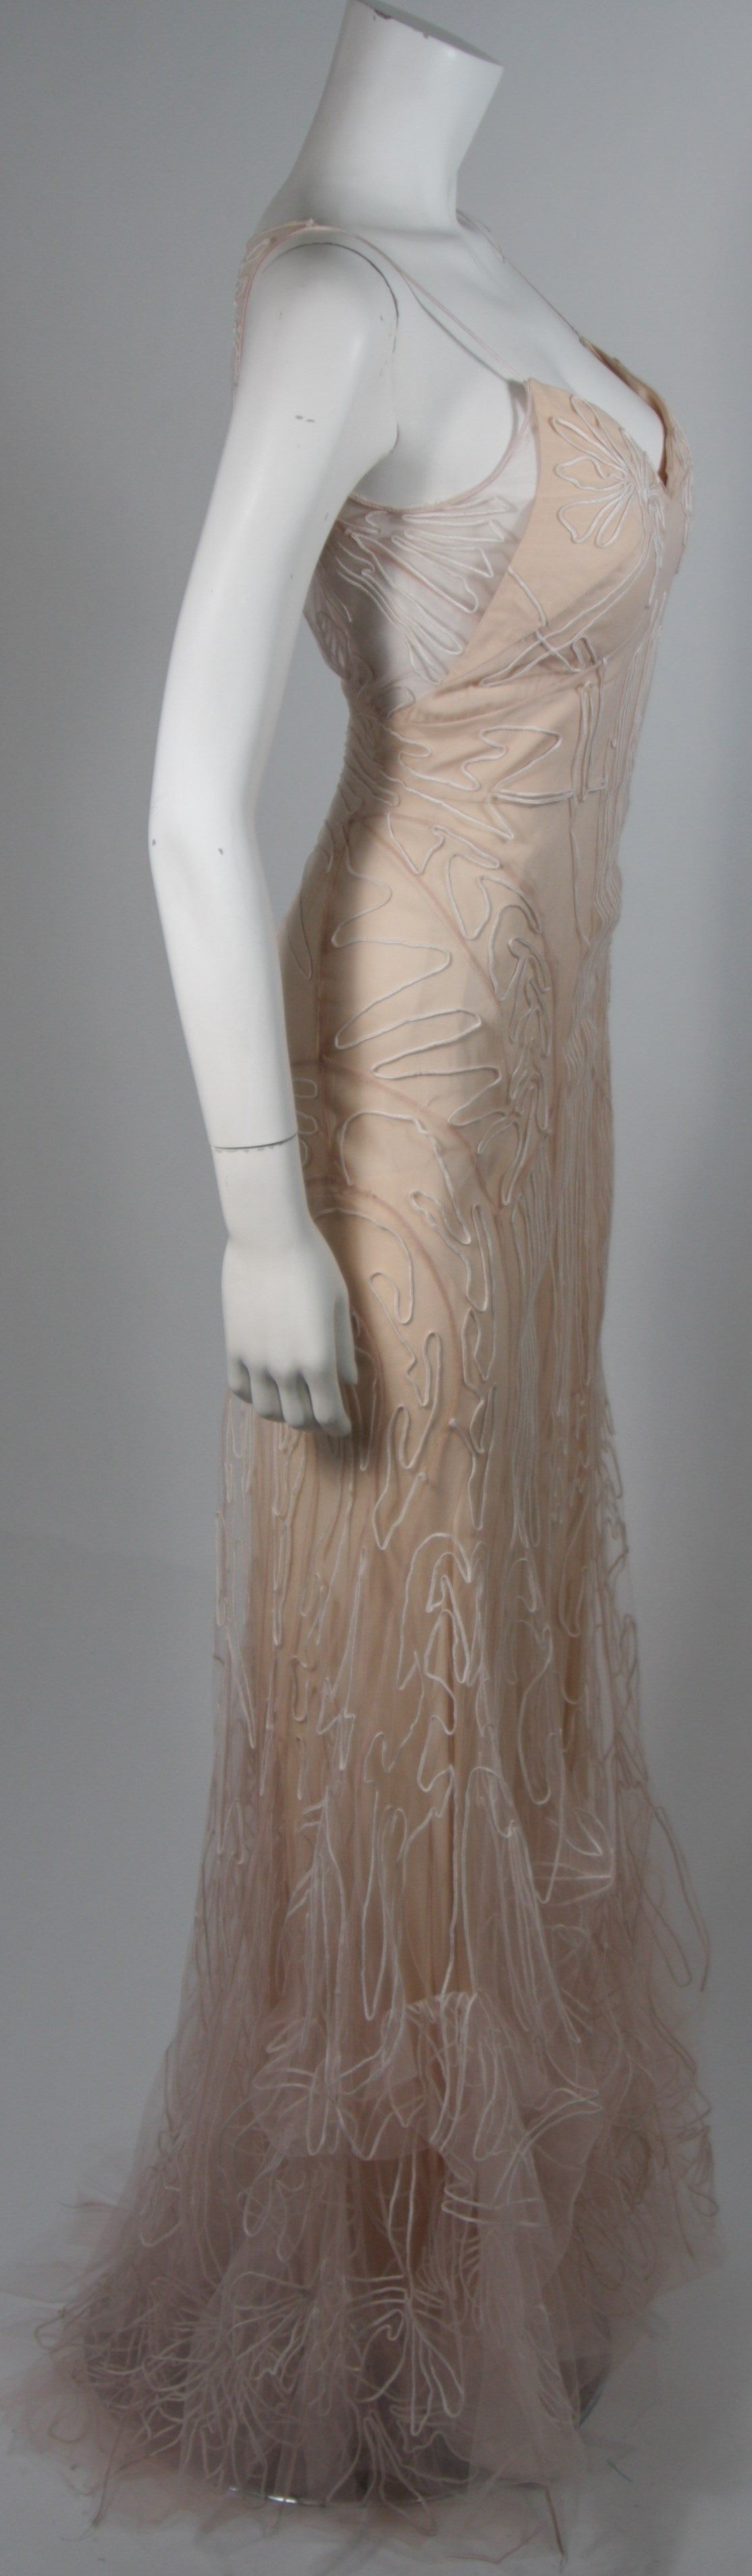 Zac Posen Embroidered Blush Silk Mesh Wedding Gown with Veil Size Small 6